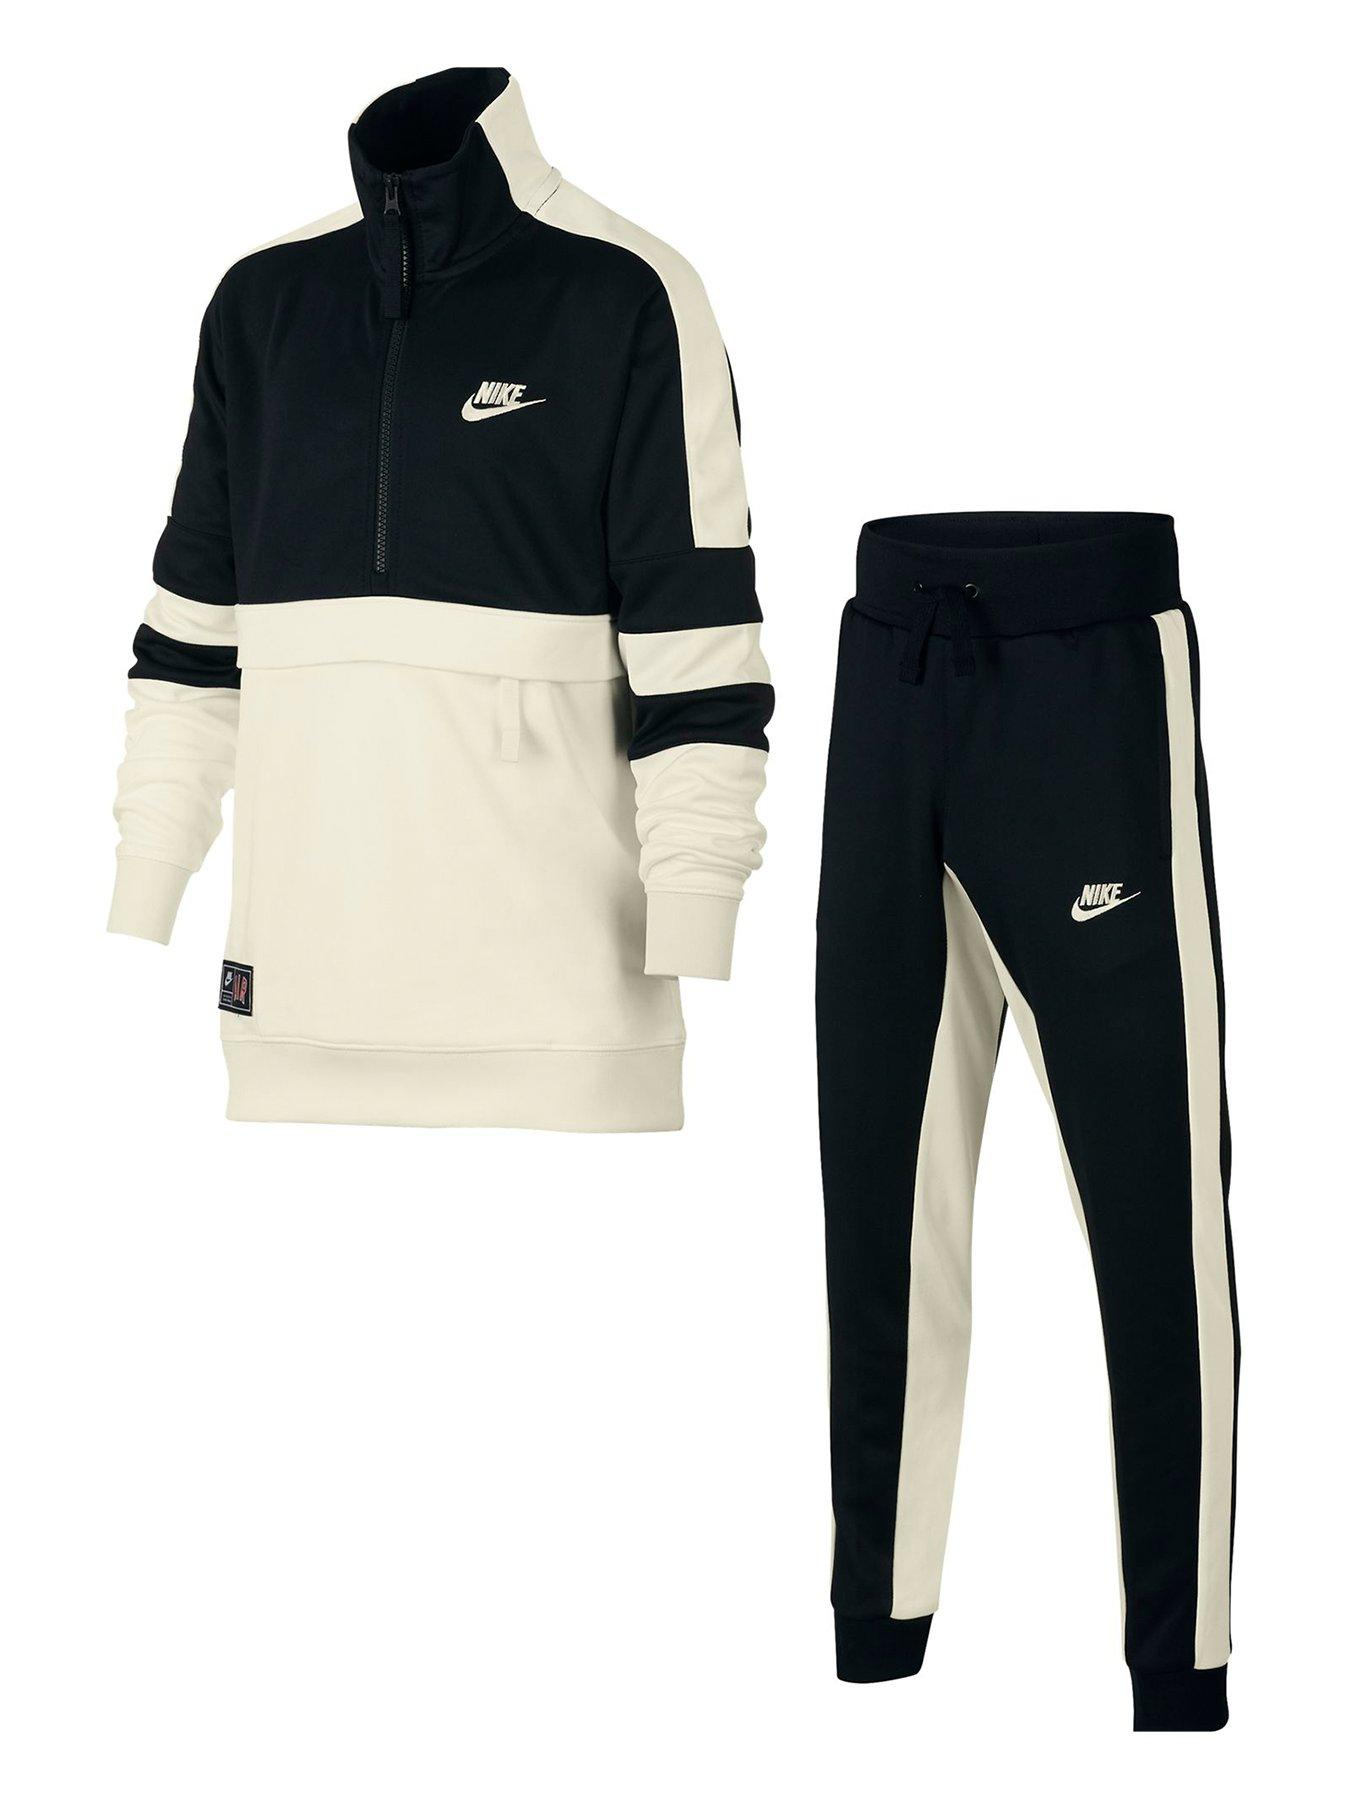 Adidas Boys Tracksuit Age 12-18 Months New Varieties Are Introduced One After Another Boys' Clothing (newborn-5t)